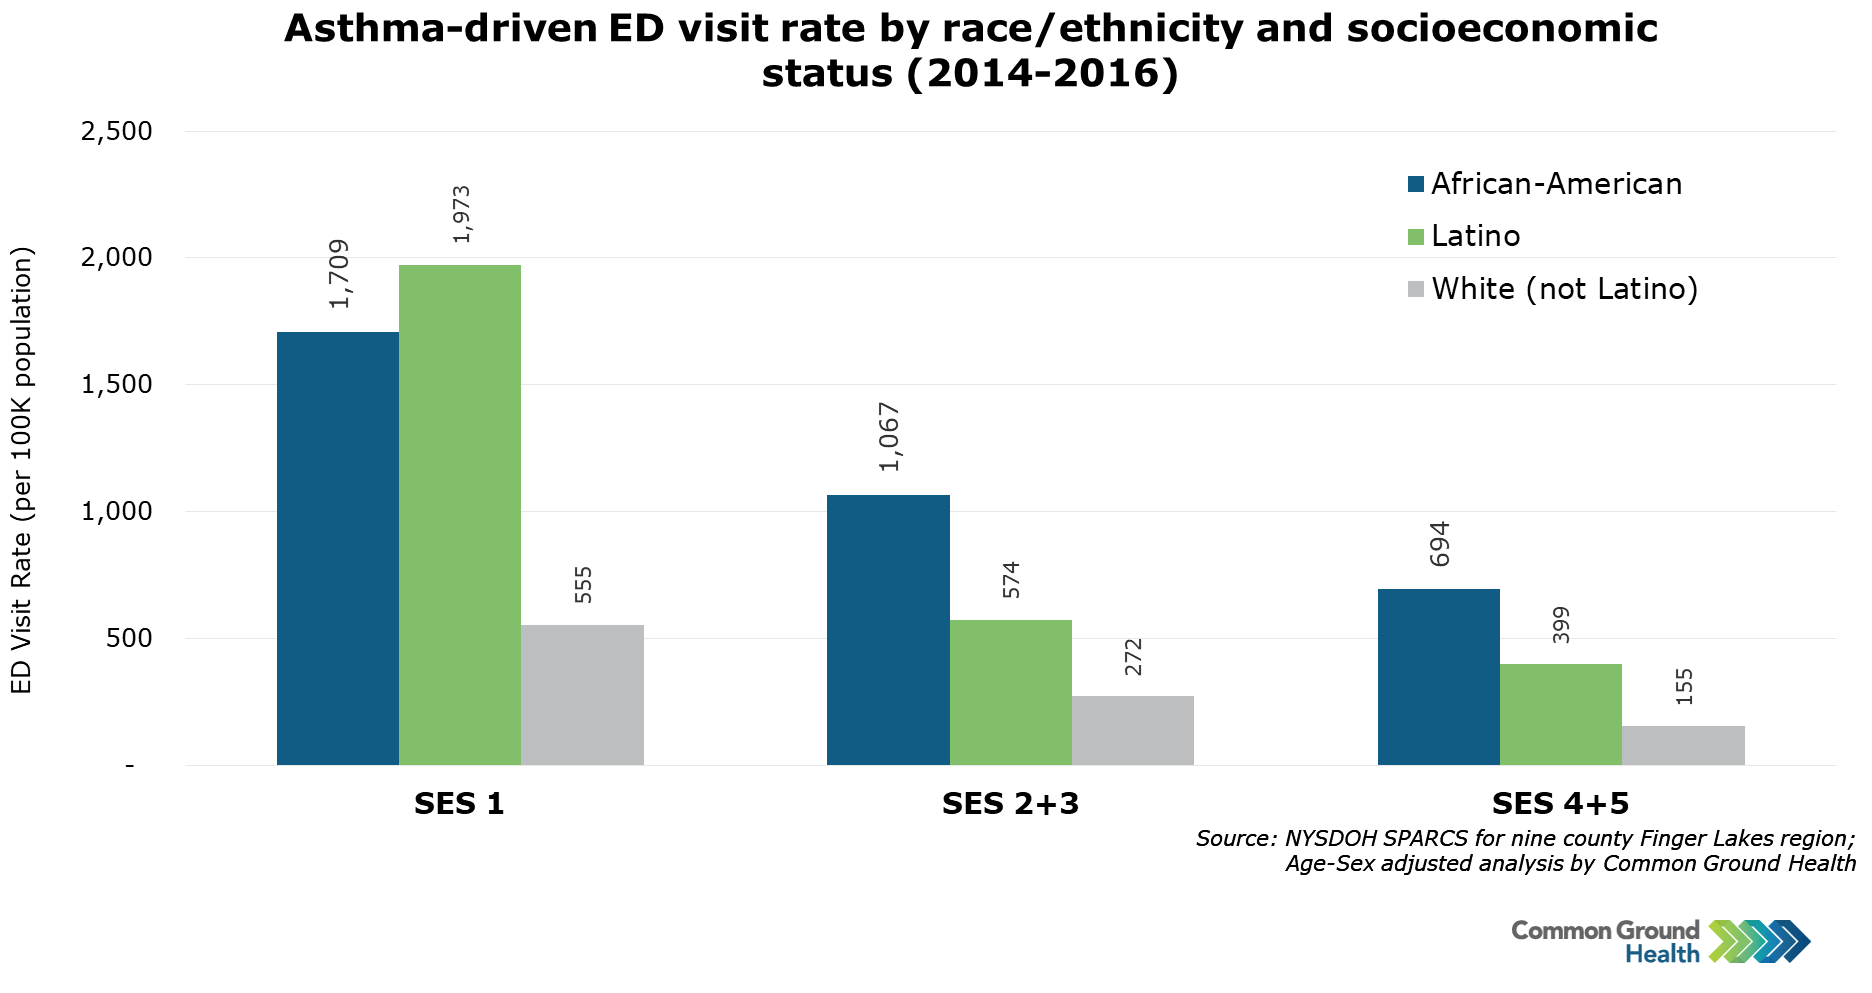 Asthma-Driven ED Visit Rate by Race/Ethnicity and Socioeconomic Status